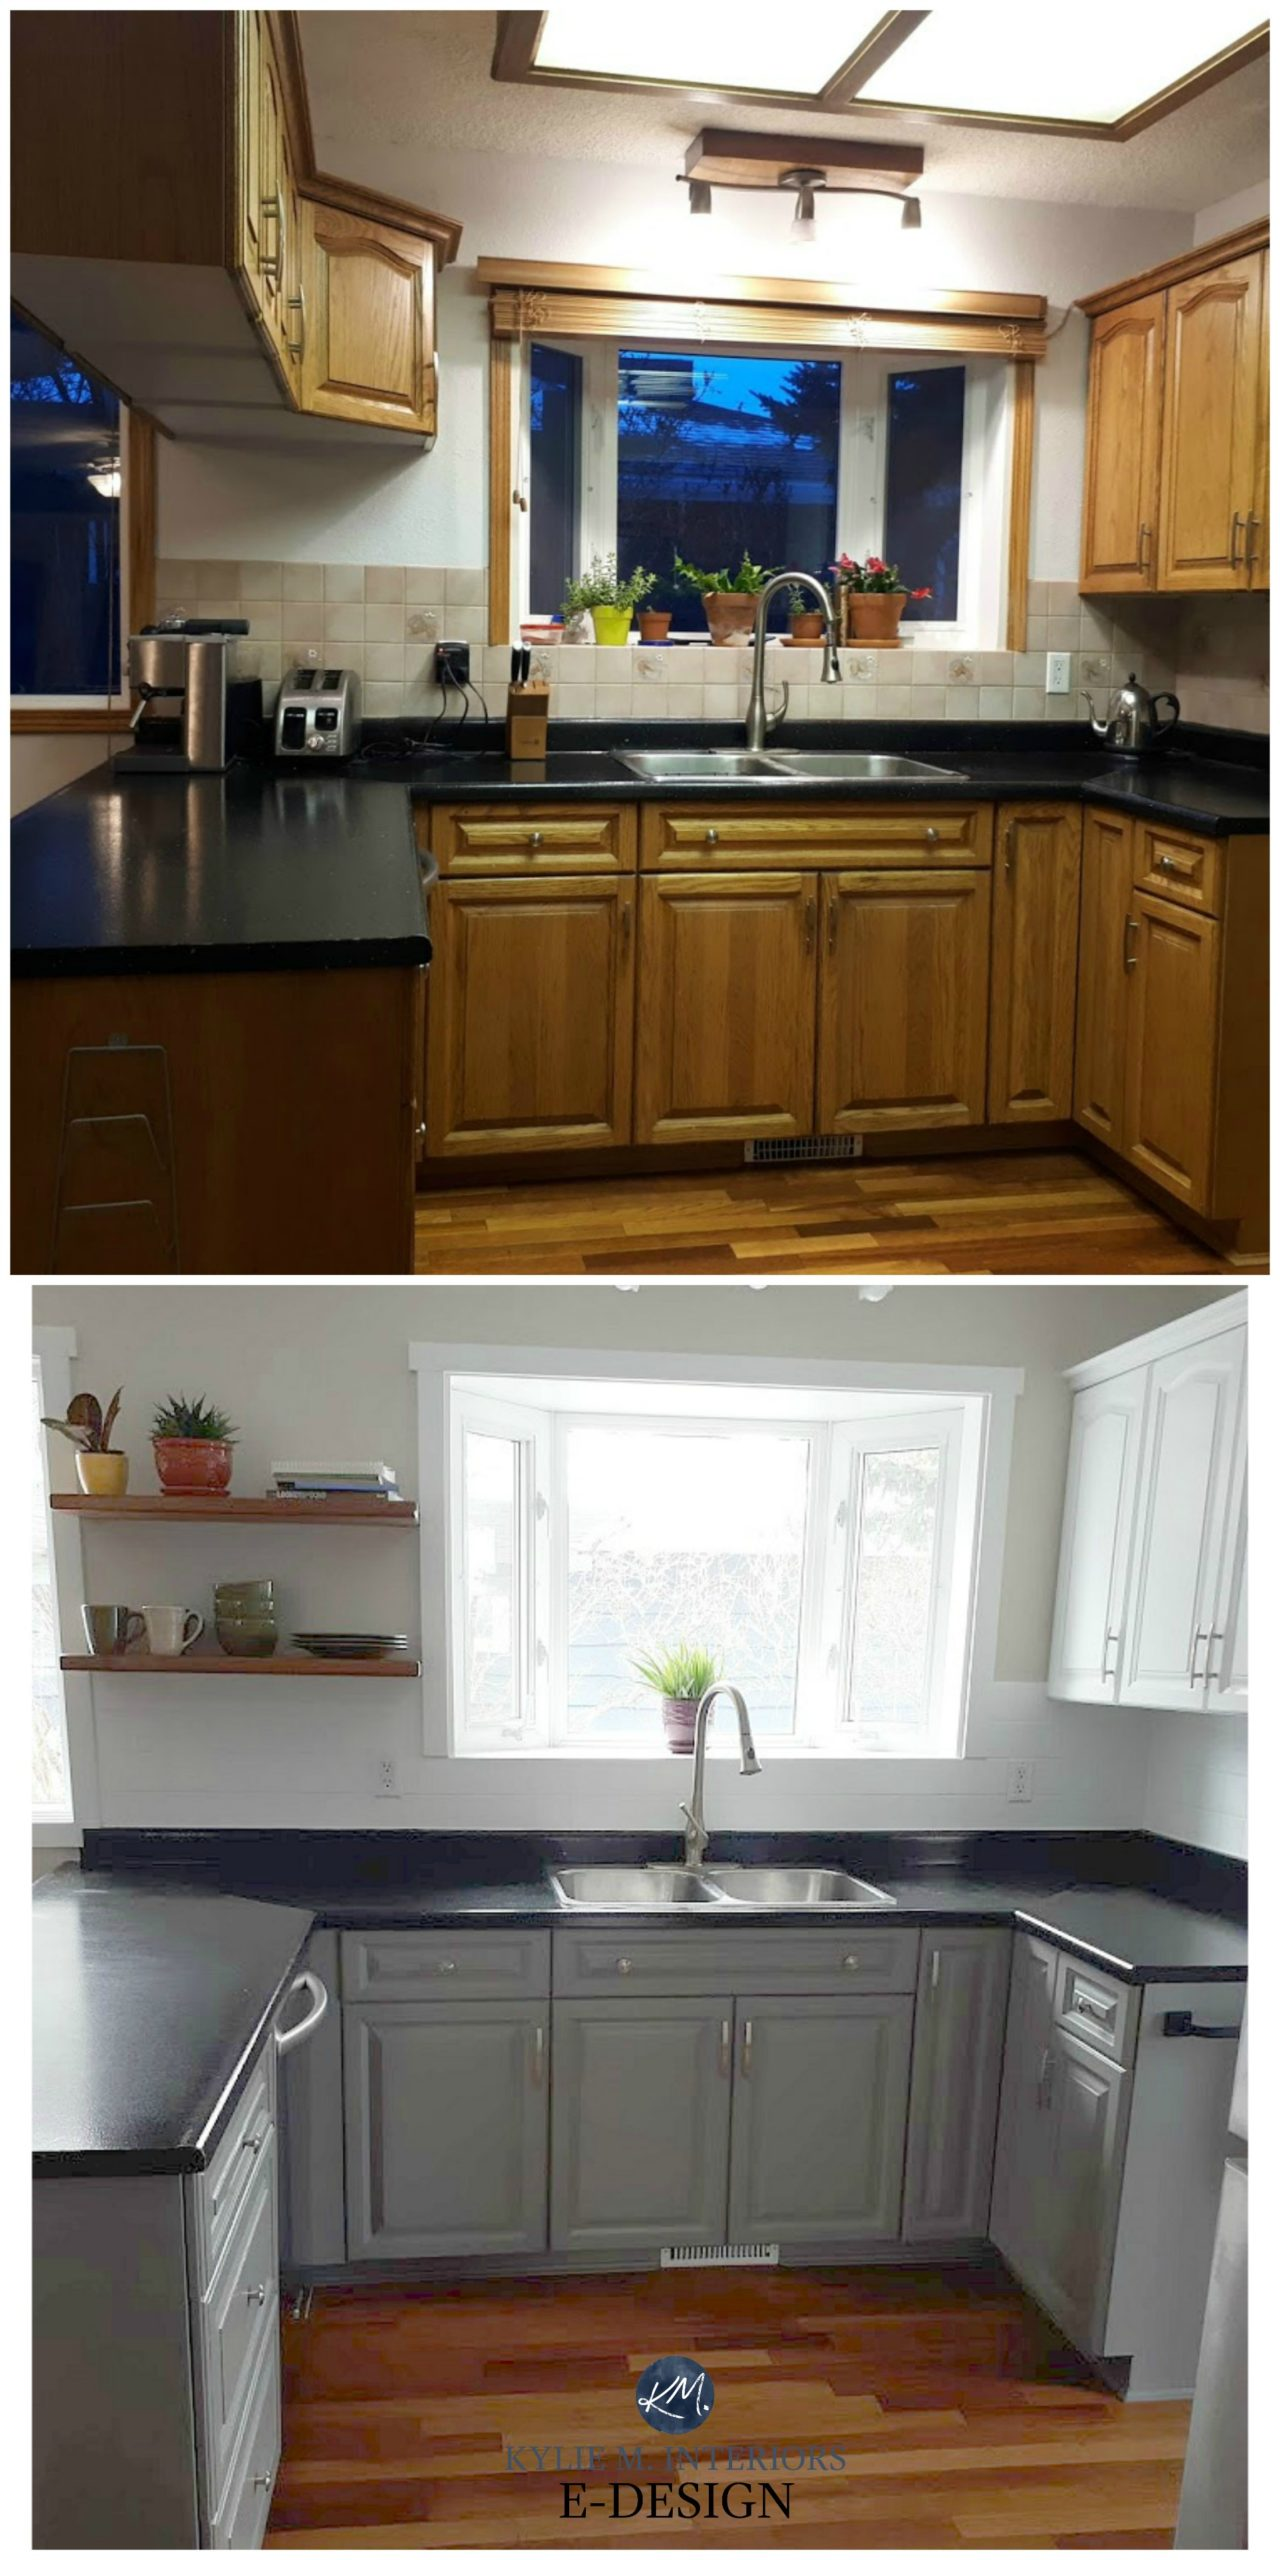 Before and after, budget friendly kitchen update ideas ...